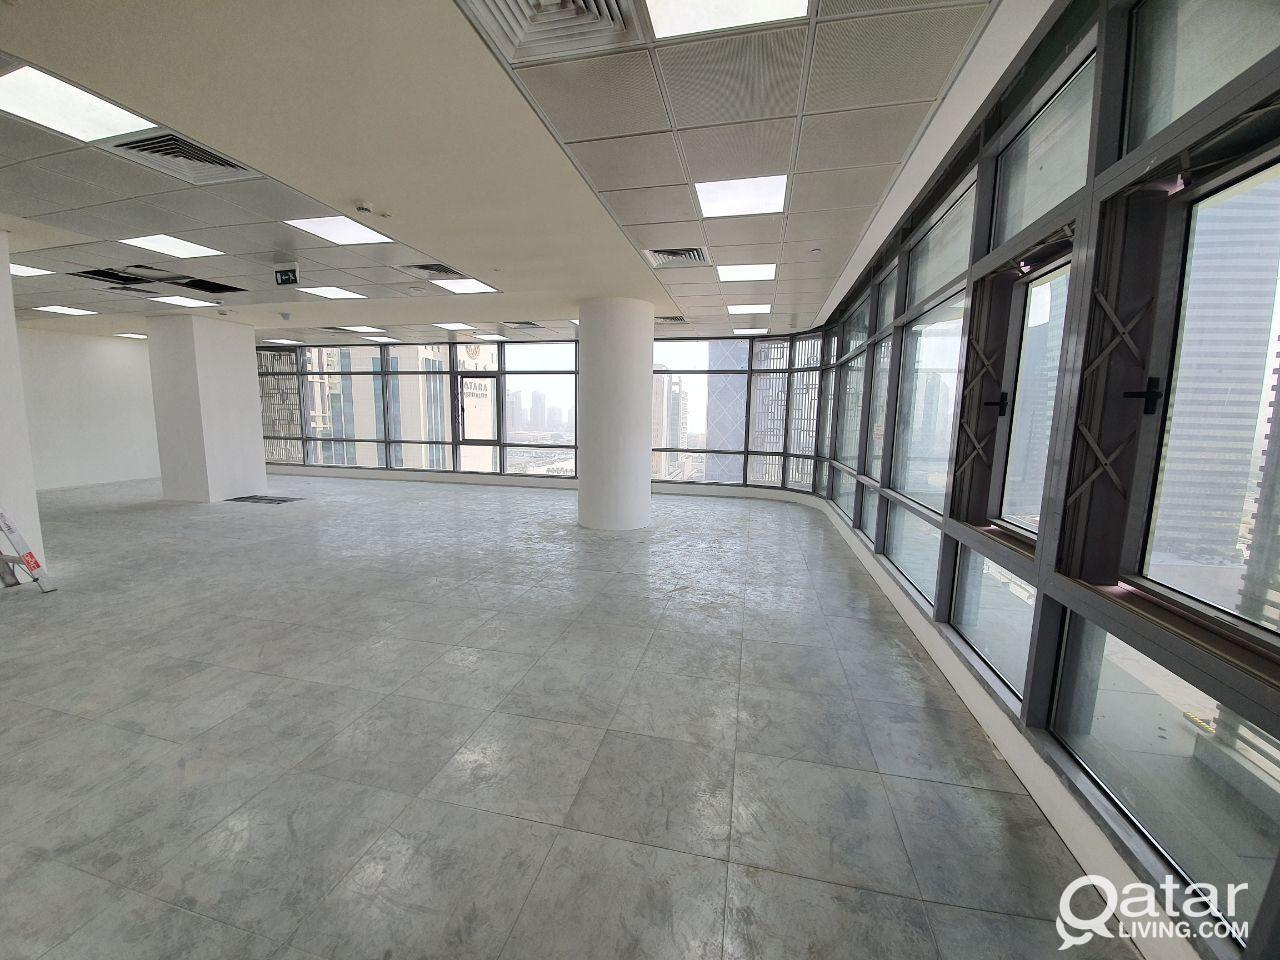 Office For Rent in Lusail - مكاتب في اللوسيل